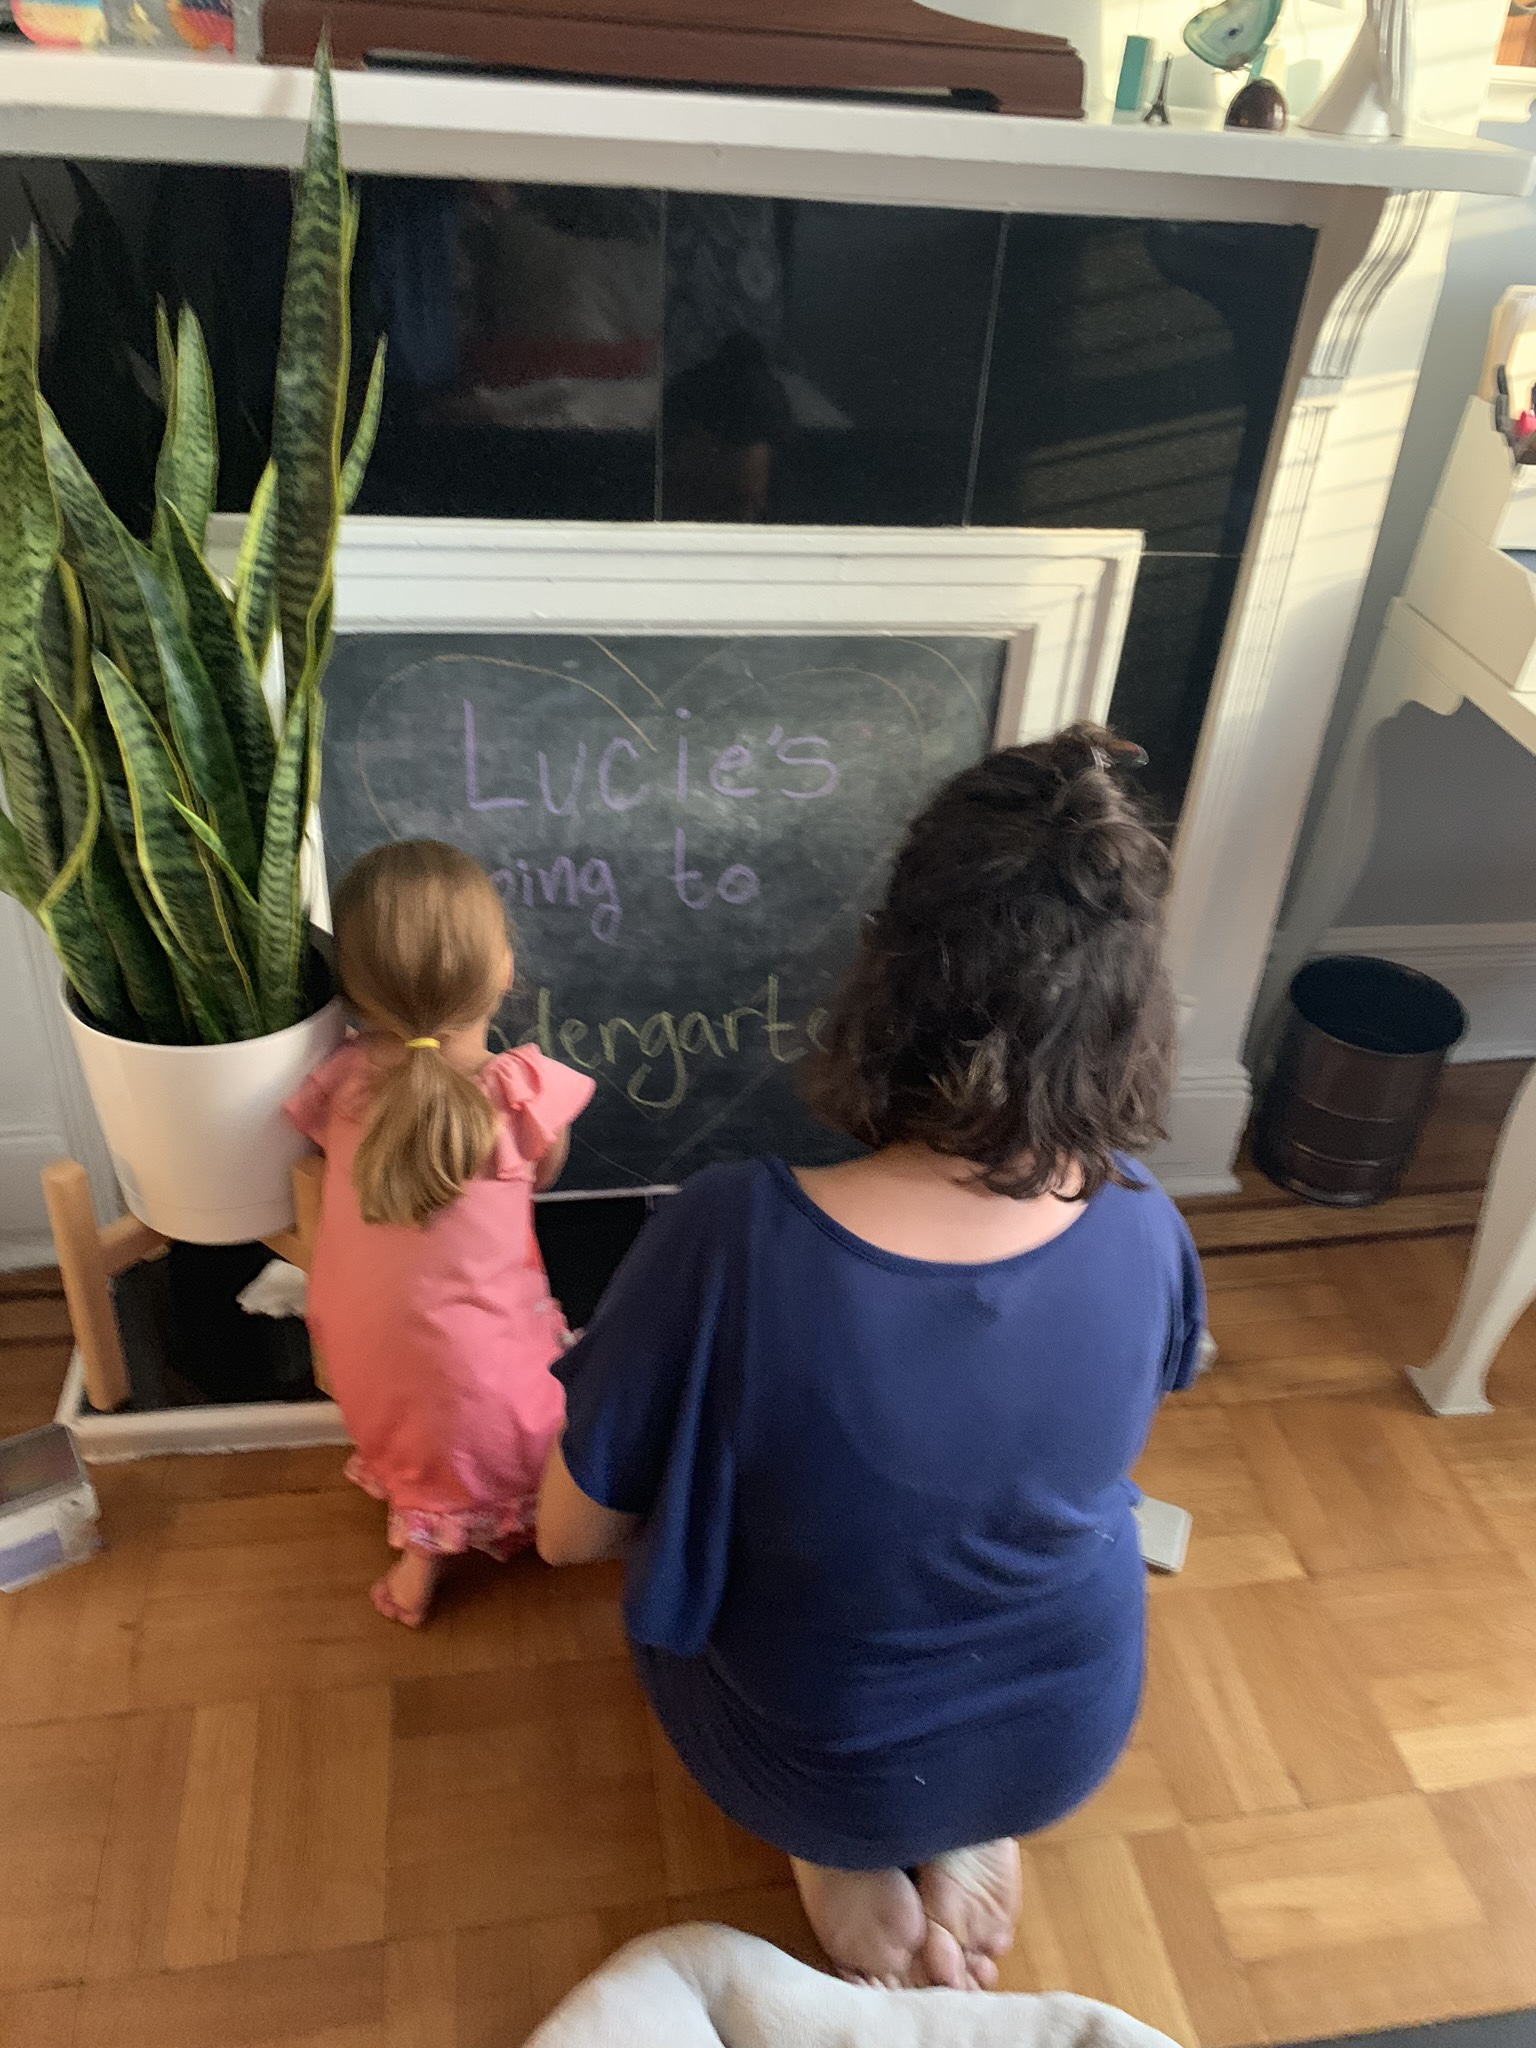 Getting the chalkboard ready for tomorrow's big day: Lucie's going to Kindergarten